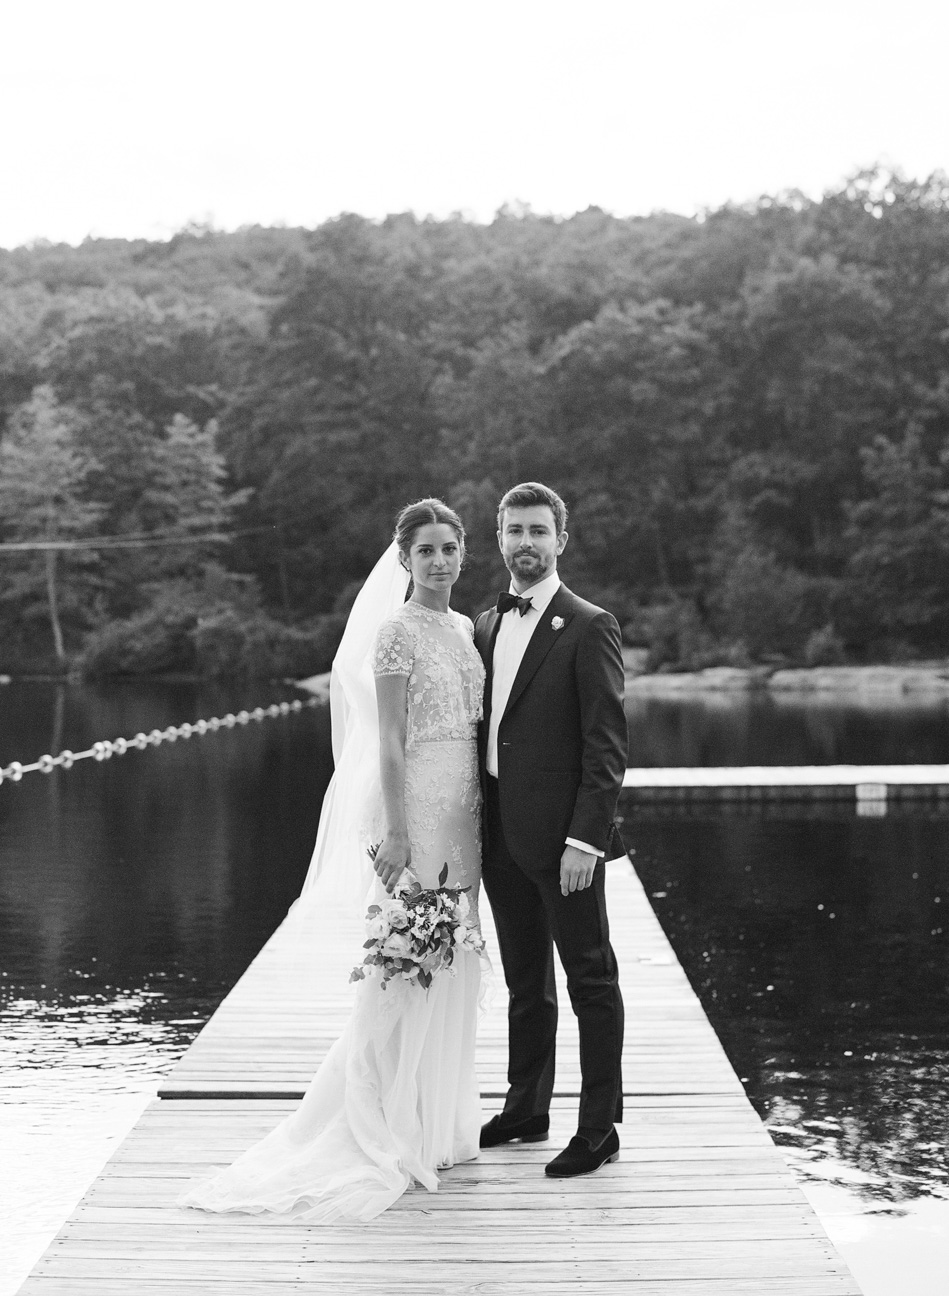 Wedding couple on a dock